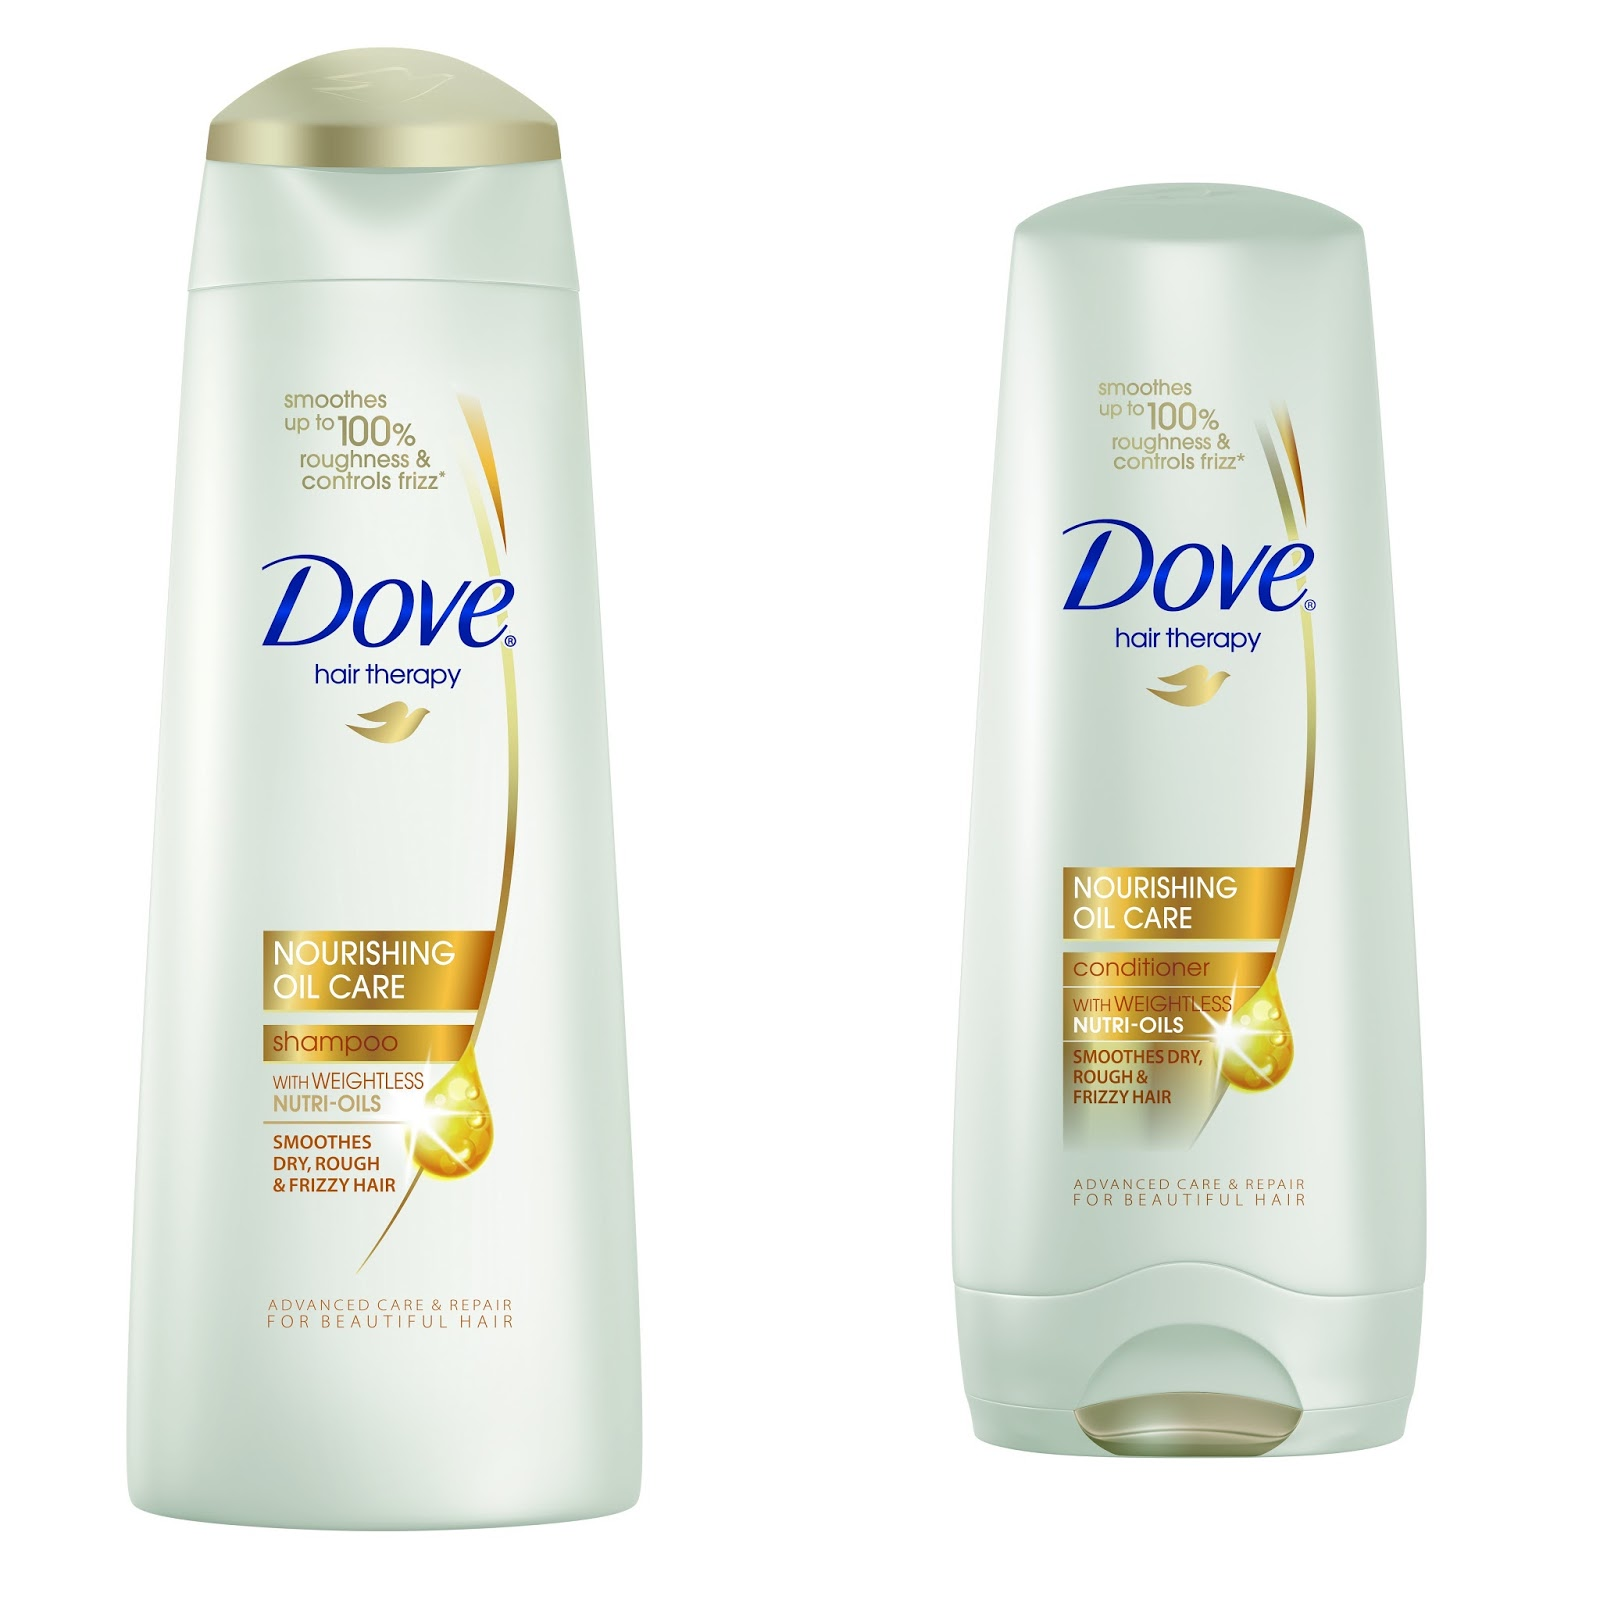 Dove The Best Daily Care Cosmetics Brand For Me Diana